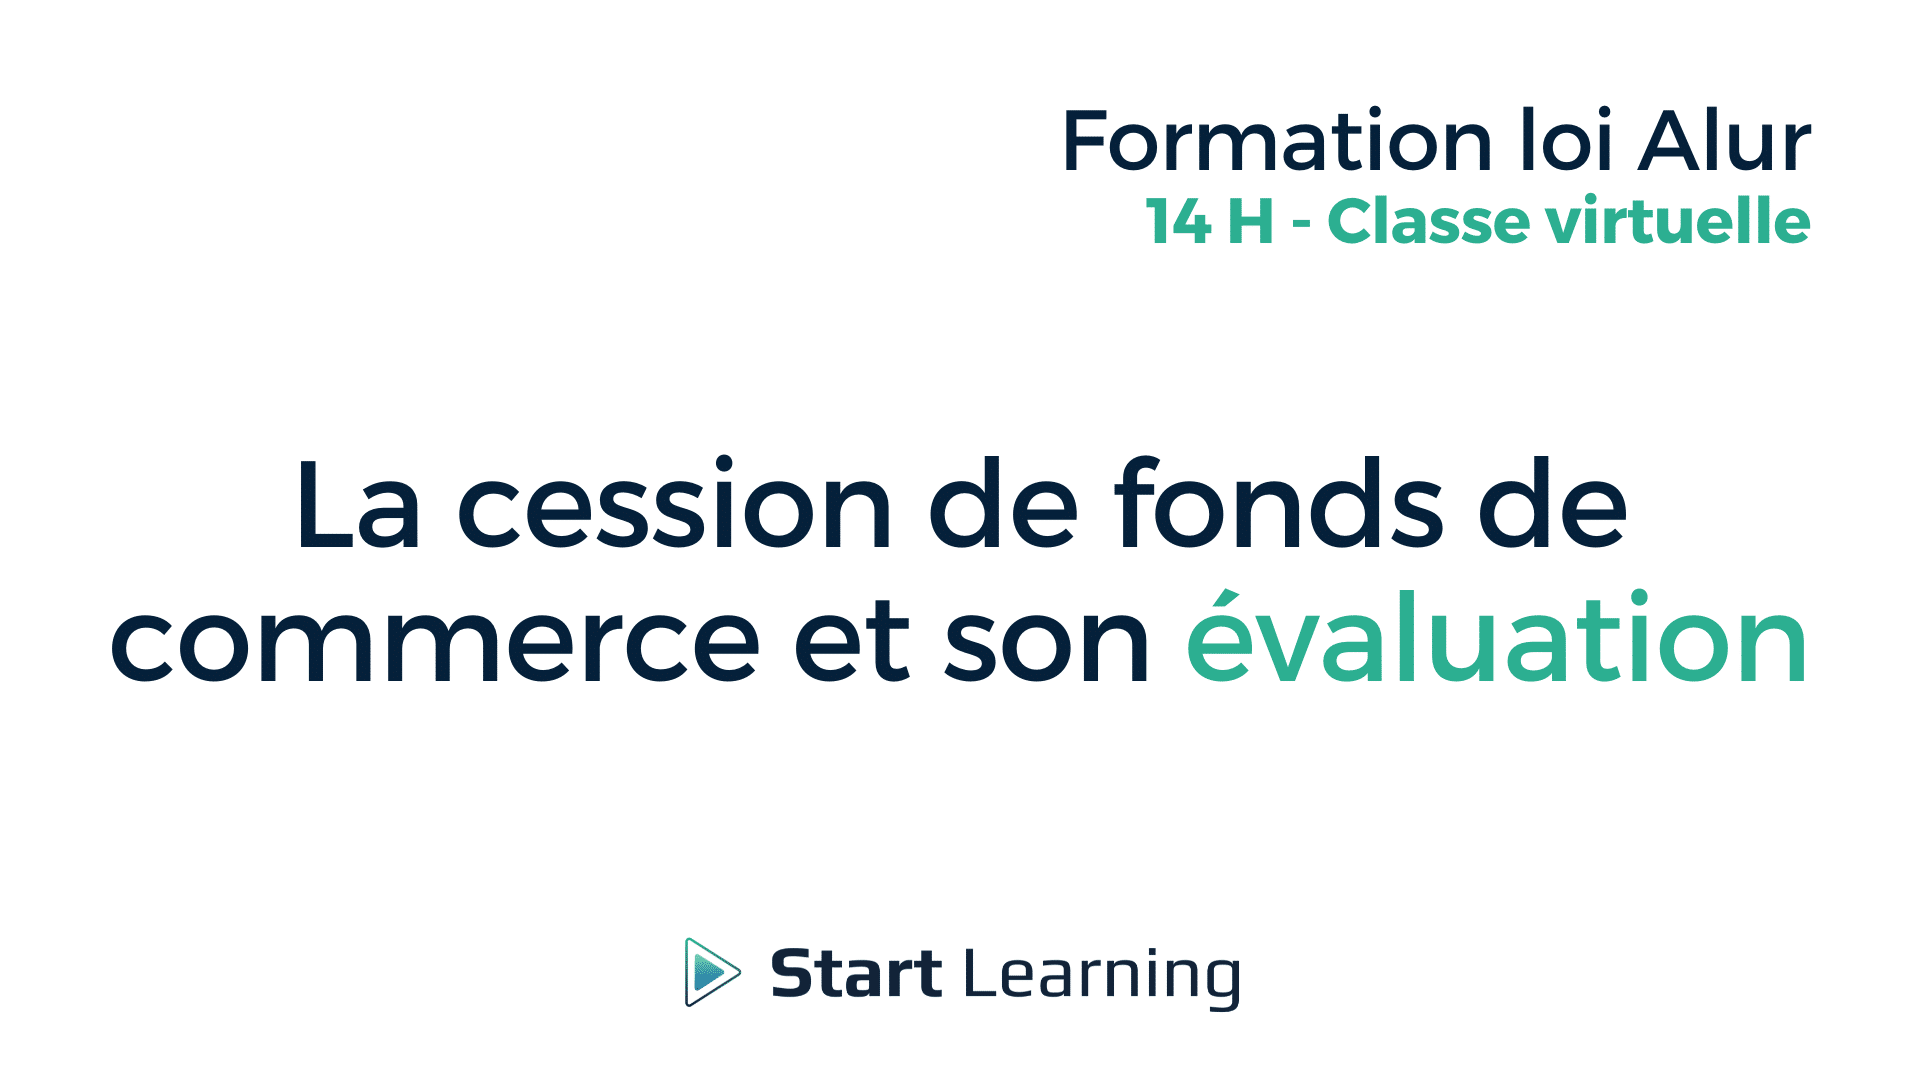 Formation loi Alur Classe virtuelle - La cession de fond de commerce et son évaluation